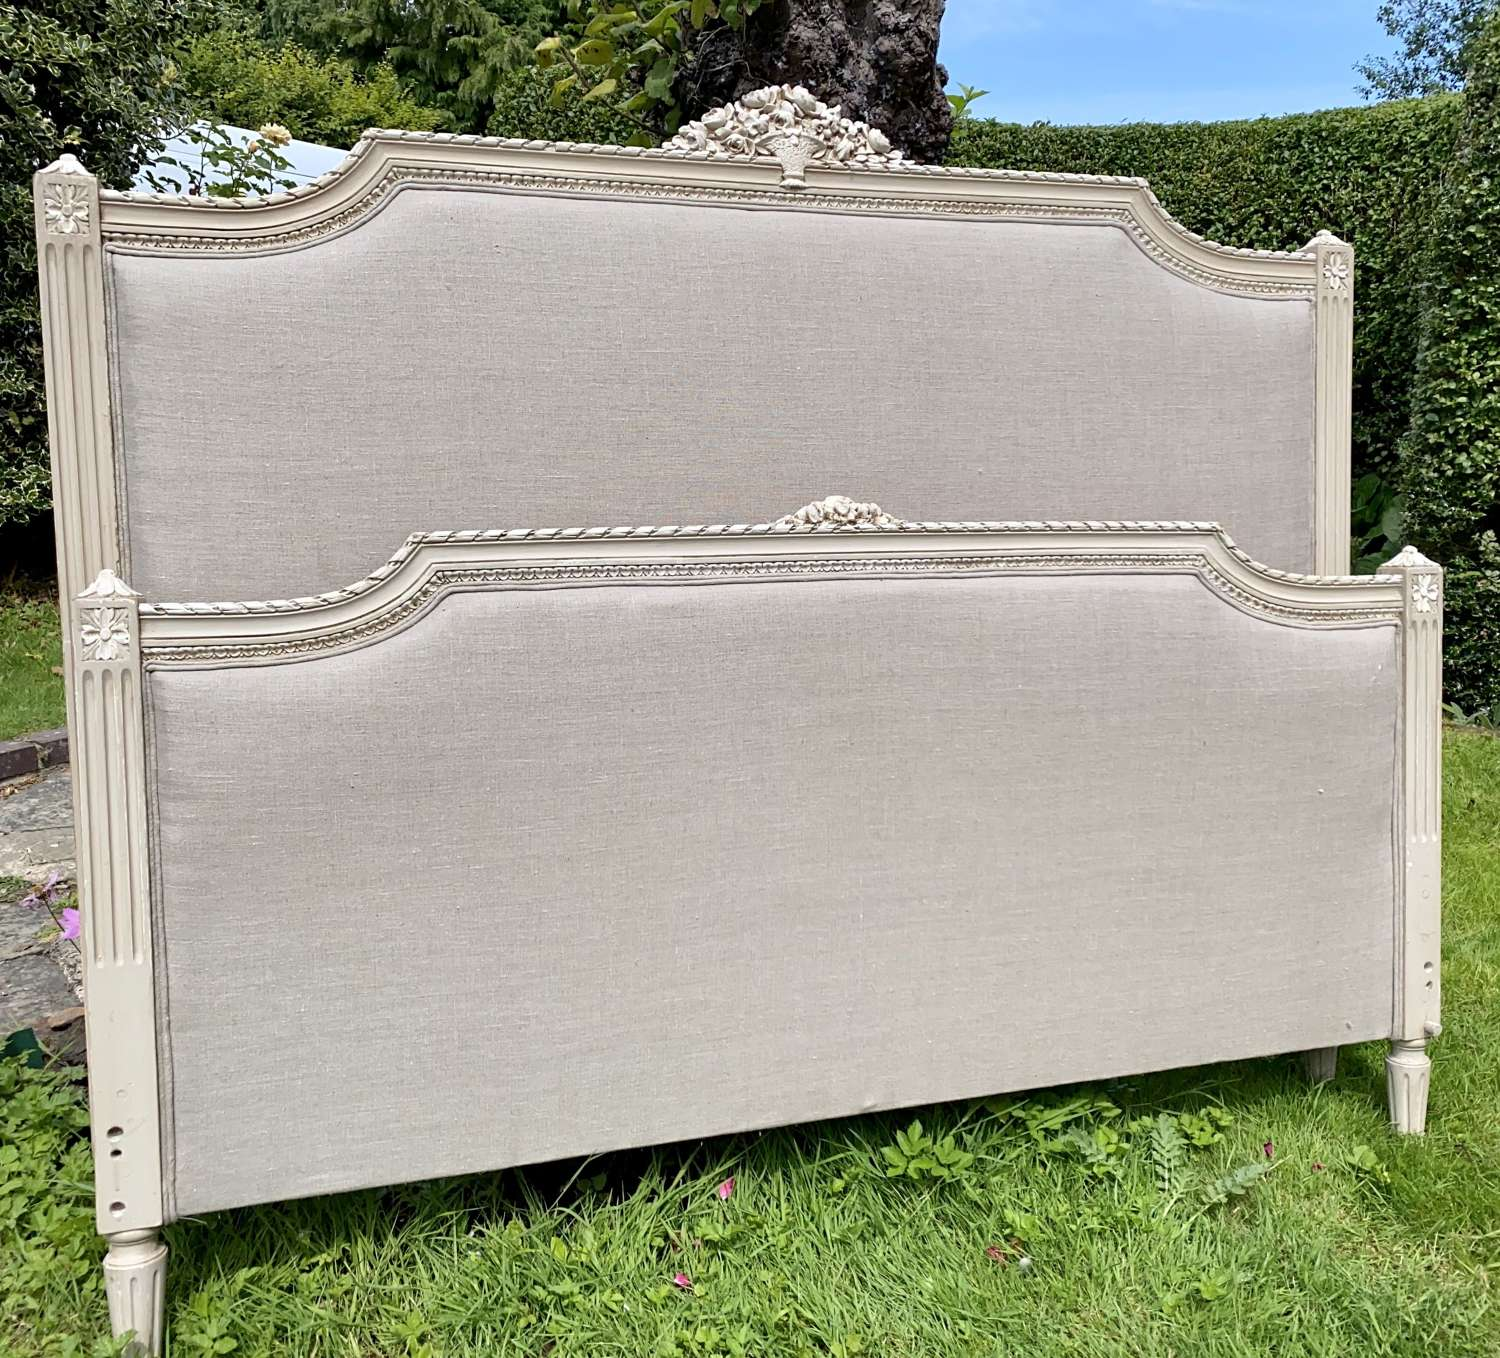 Kingsize painted French bed